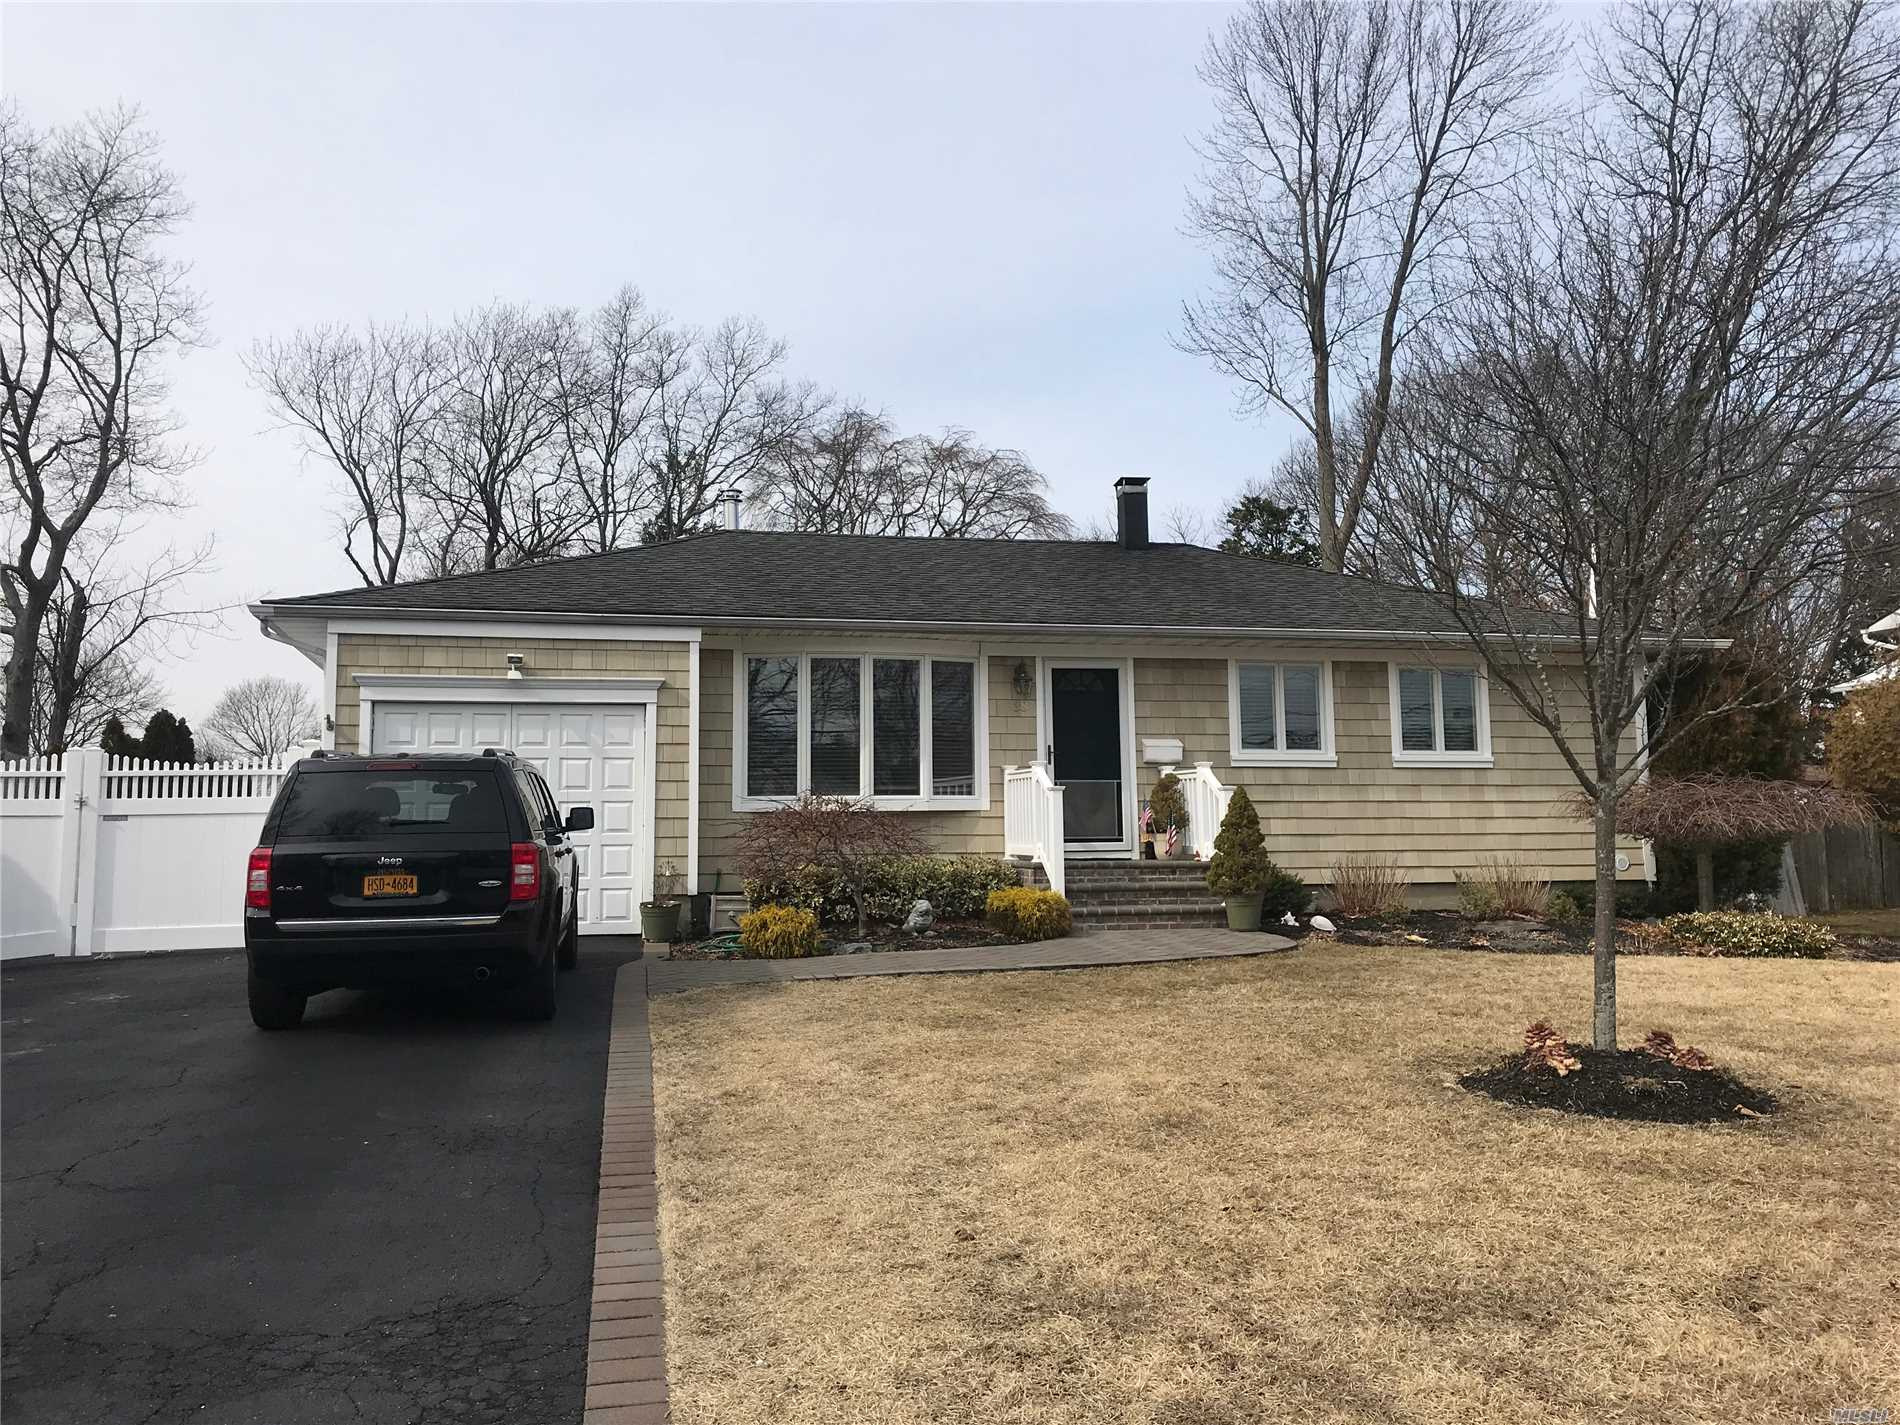 Awesome 3Bdrm Ranch With Large Fenced Yard. Full Basement, Ose. Sayville Schools